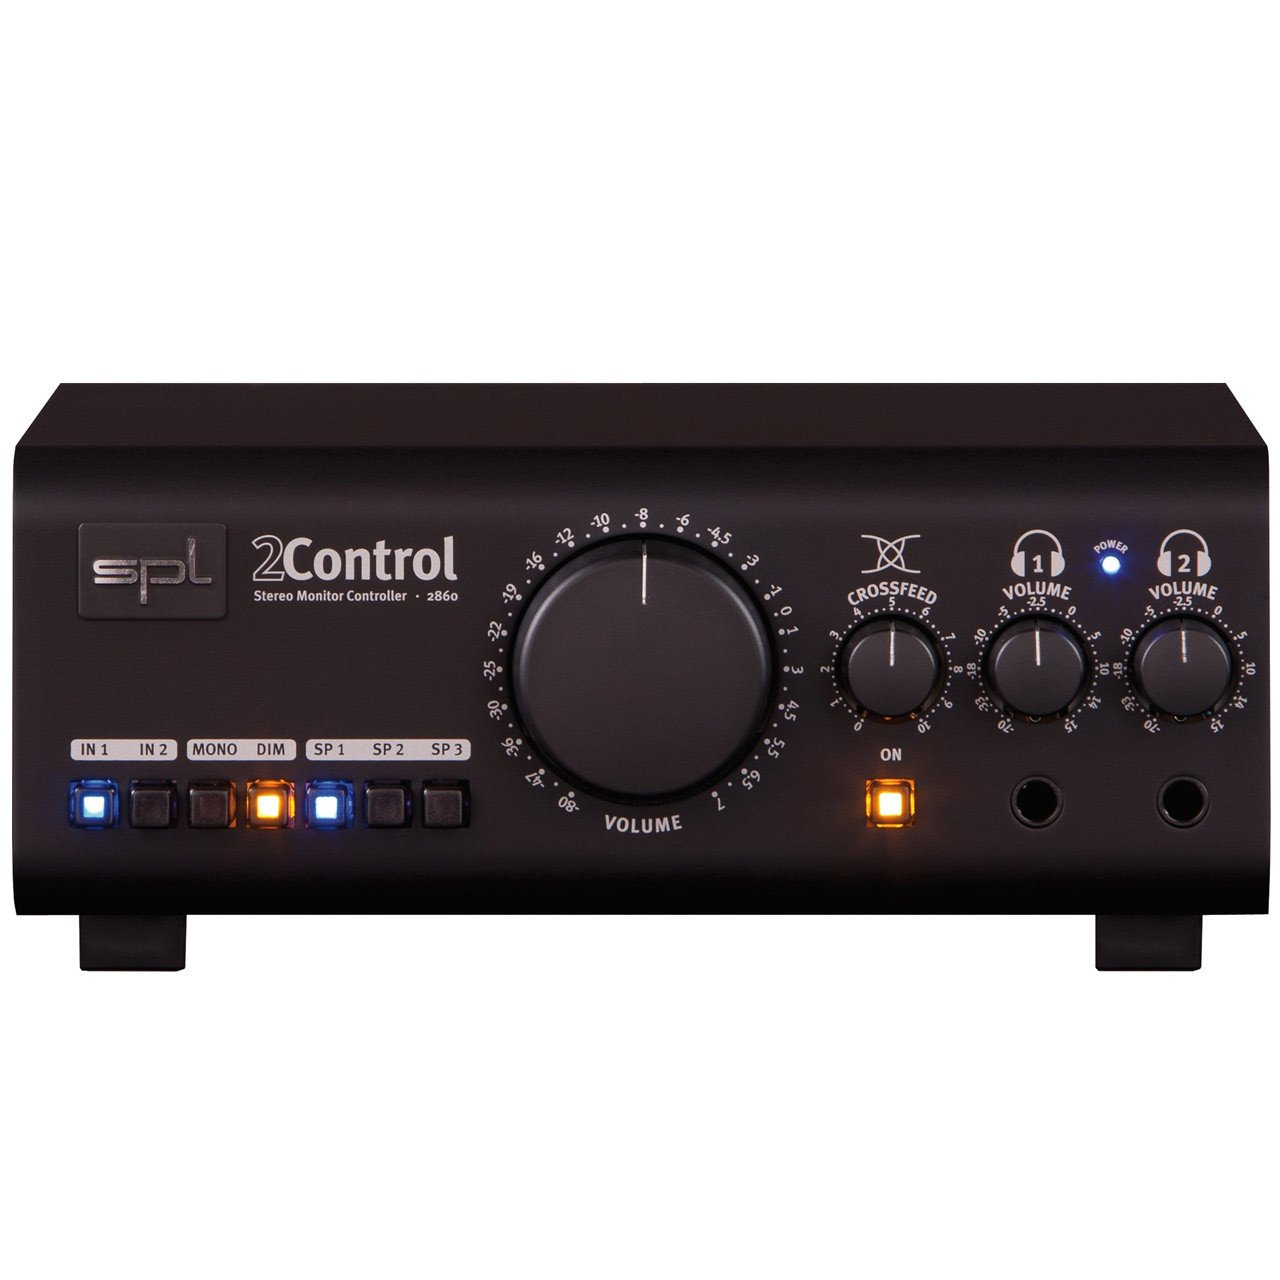 Monitor Controllers - SPL 2Control Dual High Quality Headphone Amp Controller